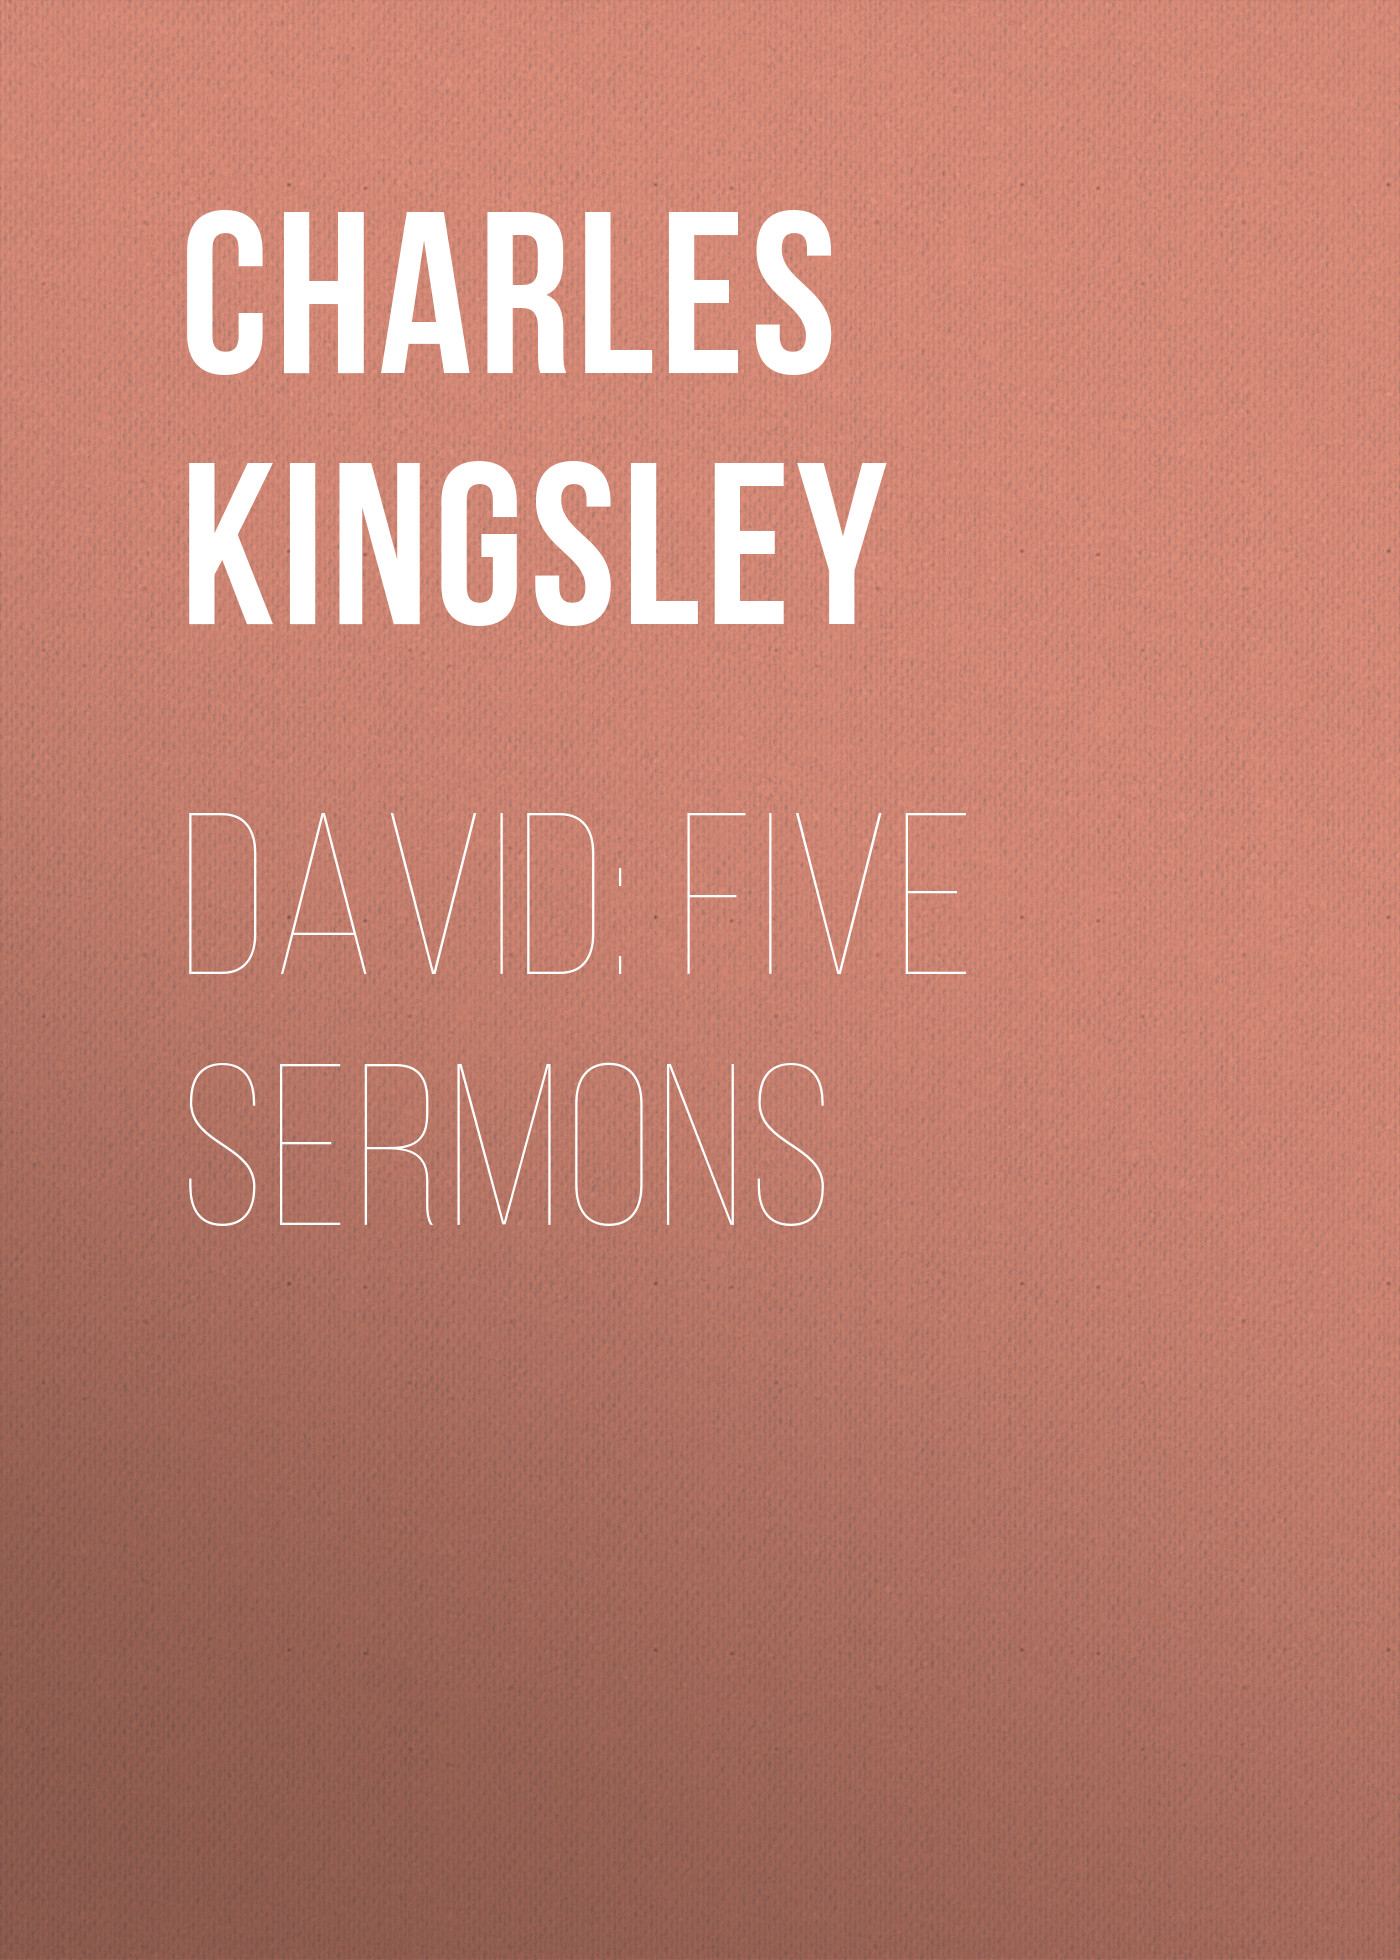 все цены на Charles Kingsley David: Five Sermons онлайн